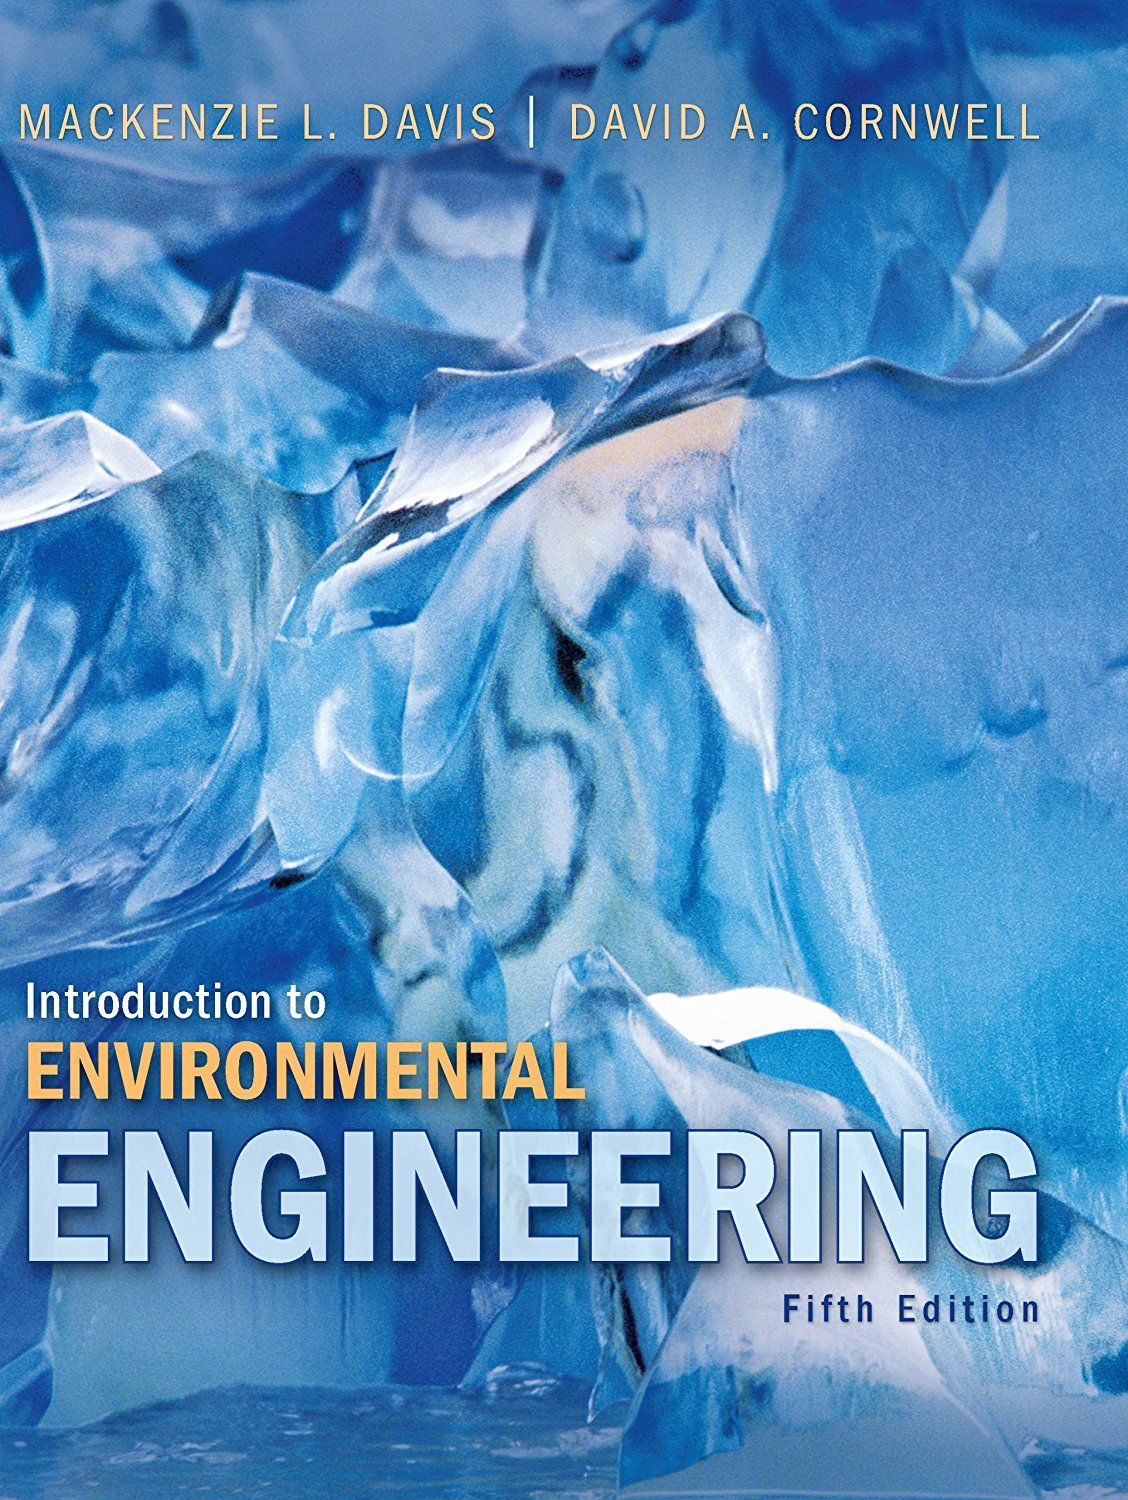 Introduction to Environmental Engineering, 5th edition (McGraw-Hill Series  in Civil and Environmental